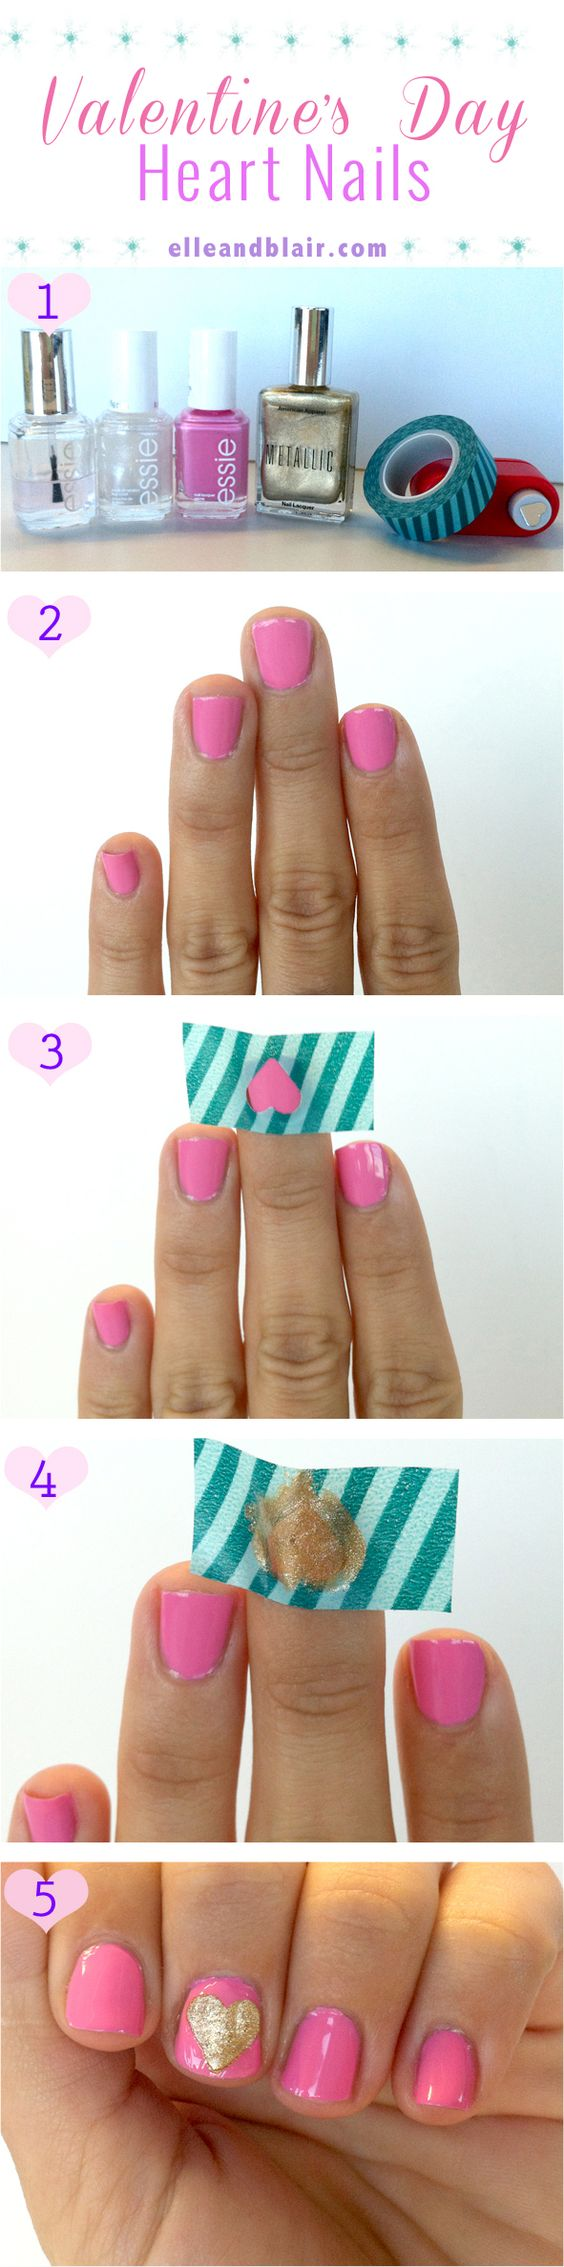 DIY Valentine's Day heart nails!